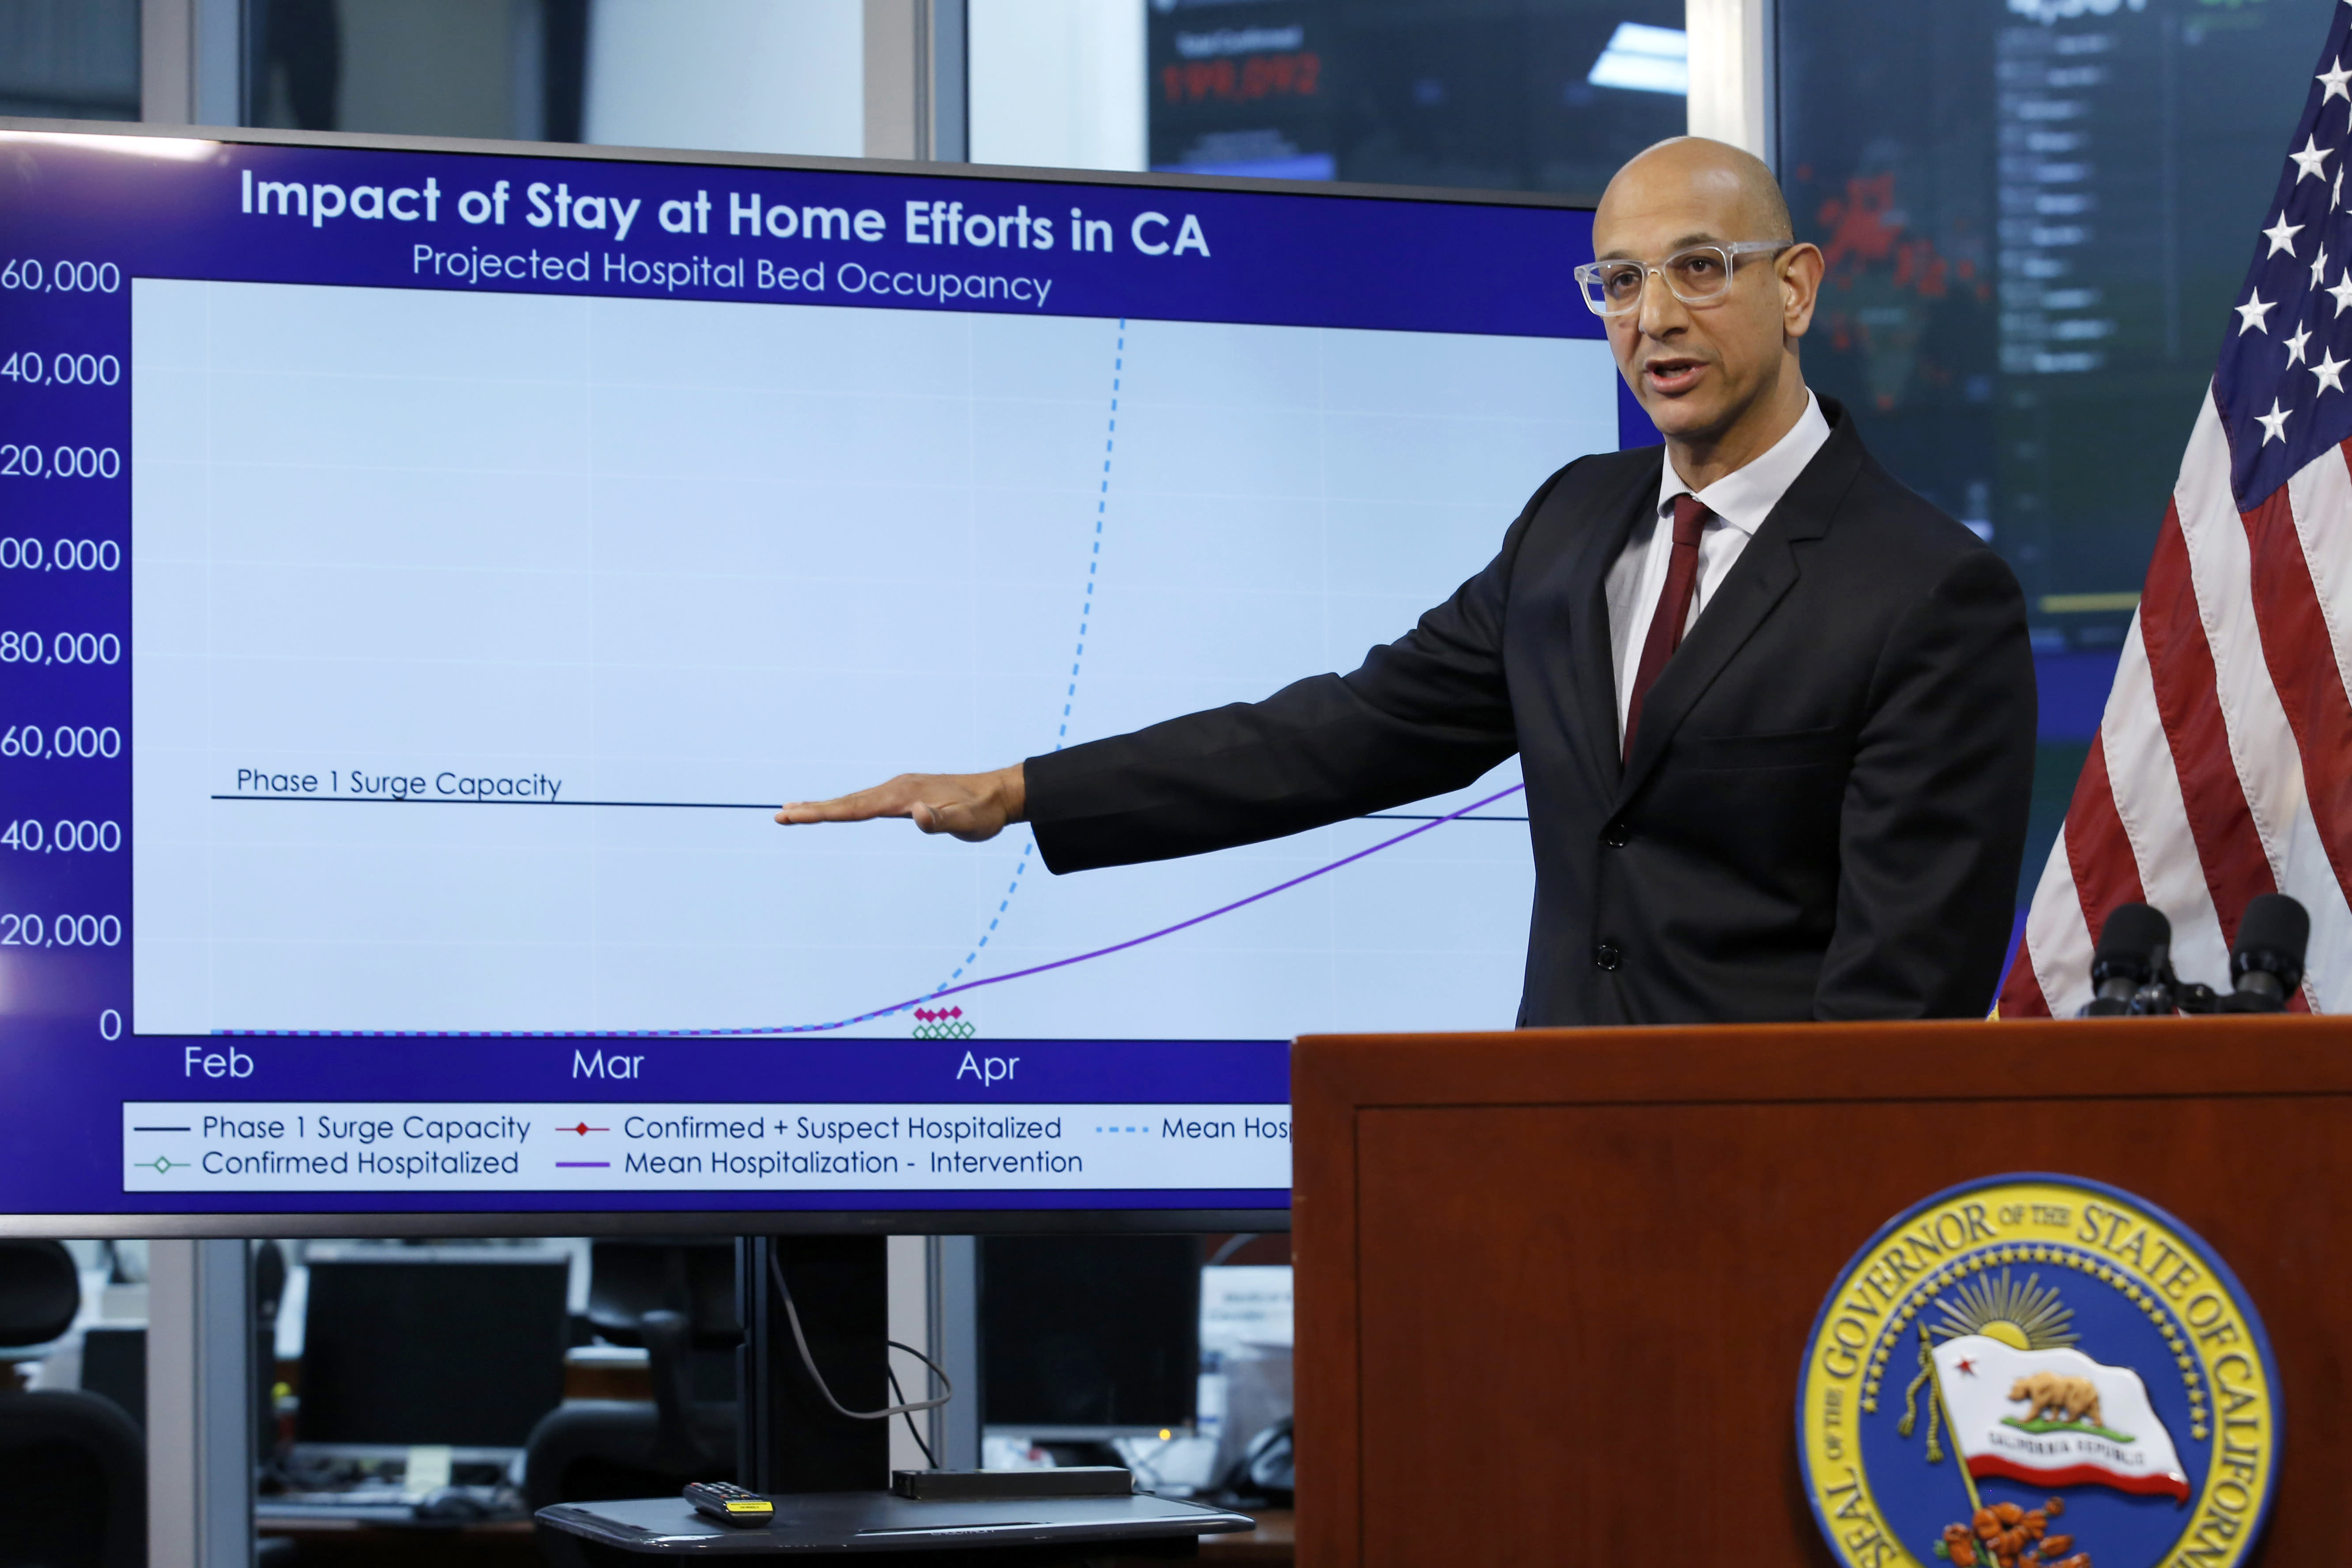 """FILE - In this April 1, 2020, file photo Dr. Mark Ghaly, secretary of the California Health and Human Services, gestures to a chart showing the impact of the mandatory stay-at-home orders, during a news conference in Rancho Cordova, Calif. A steady drop in coronavirus cases across California cleared the way Tuesday, Sept. 22, 2020, for the wider reopening of businesses in nine counties, including much of the San Francisco Bay Area, the state's top health official said. Ghaly, said nail salons could also reopen with restrictions, though he cautioned that California's reopening must remain """"slow and stringent"""" and residents cannot let their guard down as flu season arrives and cases rise in Europe and other parts of the U.S. (AP Photo/Rich Pedroncelli, Pool, File)"""